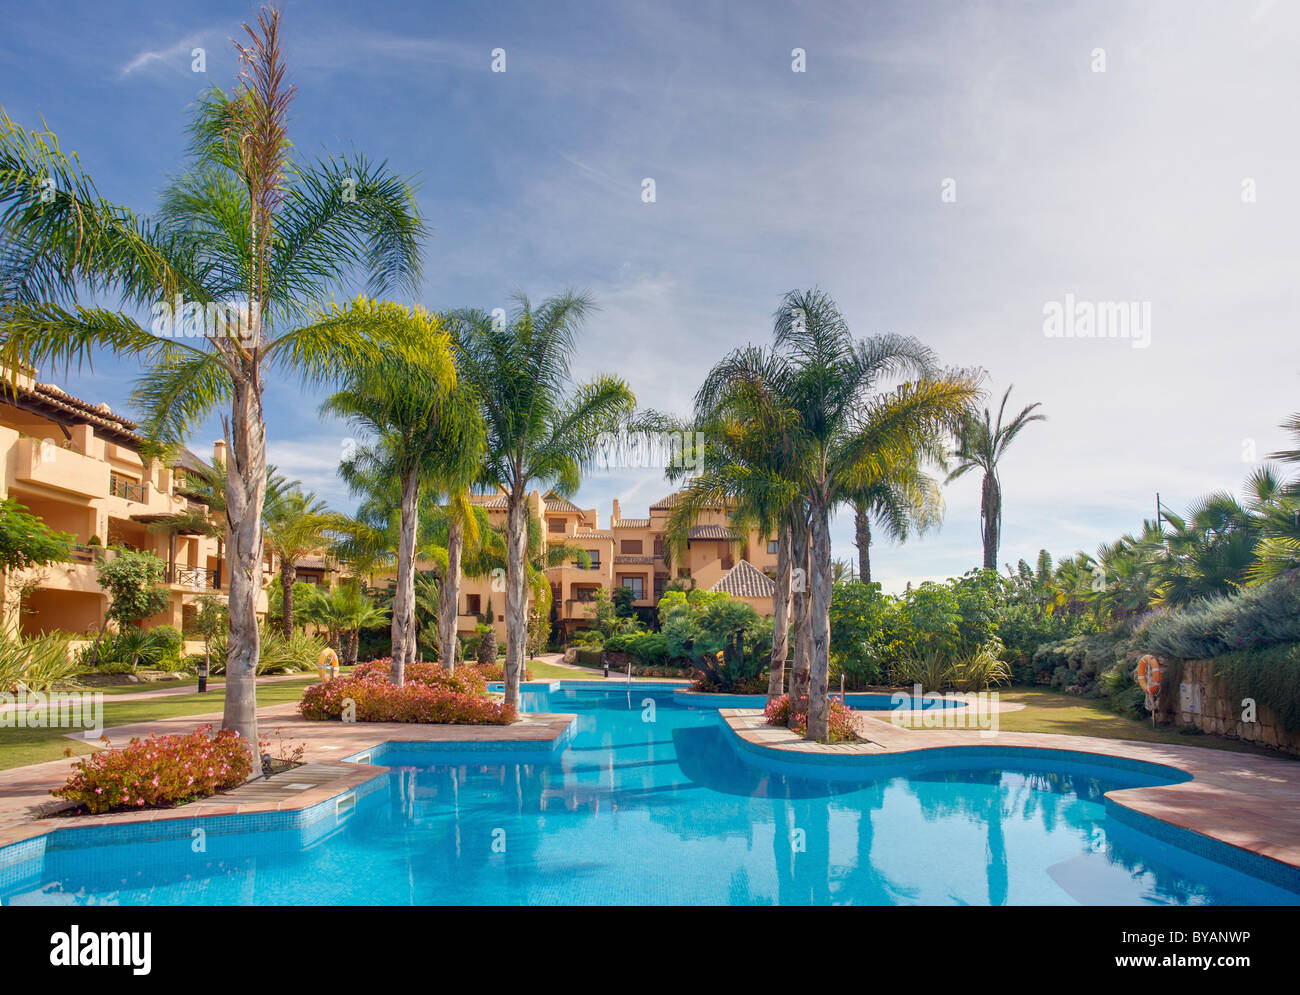 Luxury apartments and pool in Spain - Stock Image